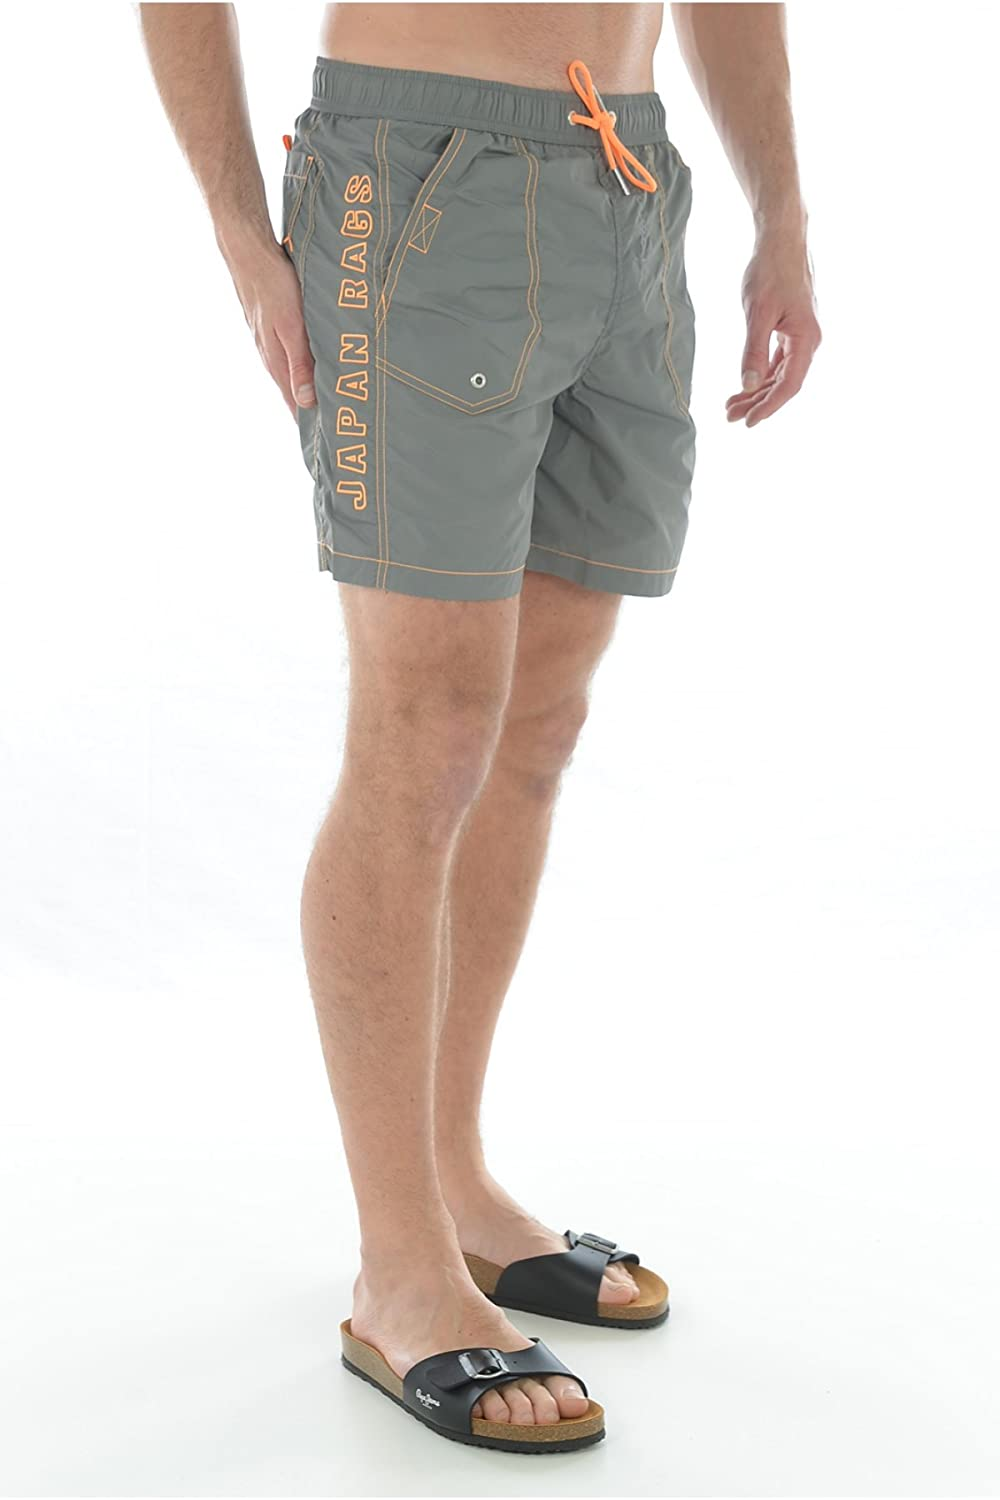 Japan Rags Men's Watershorts Jap 02?Grey